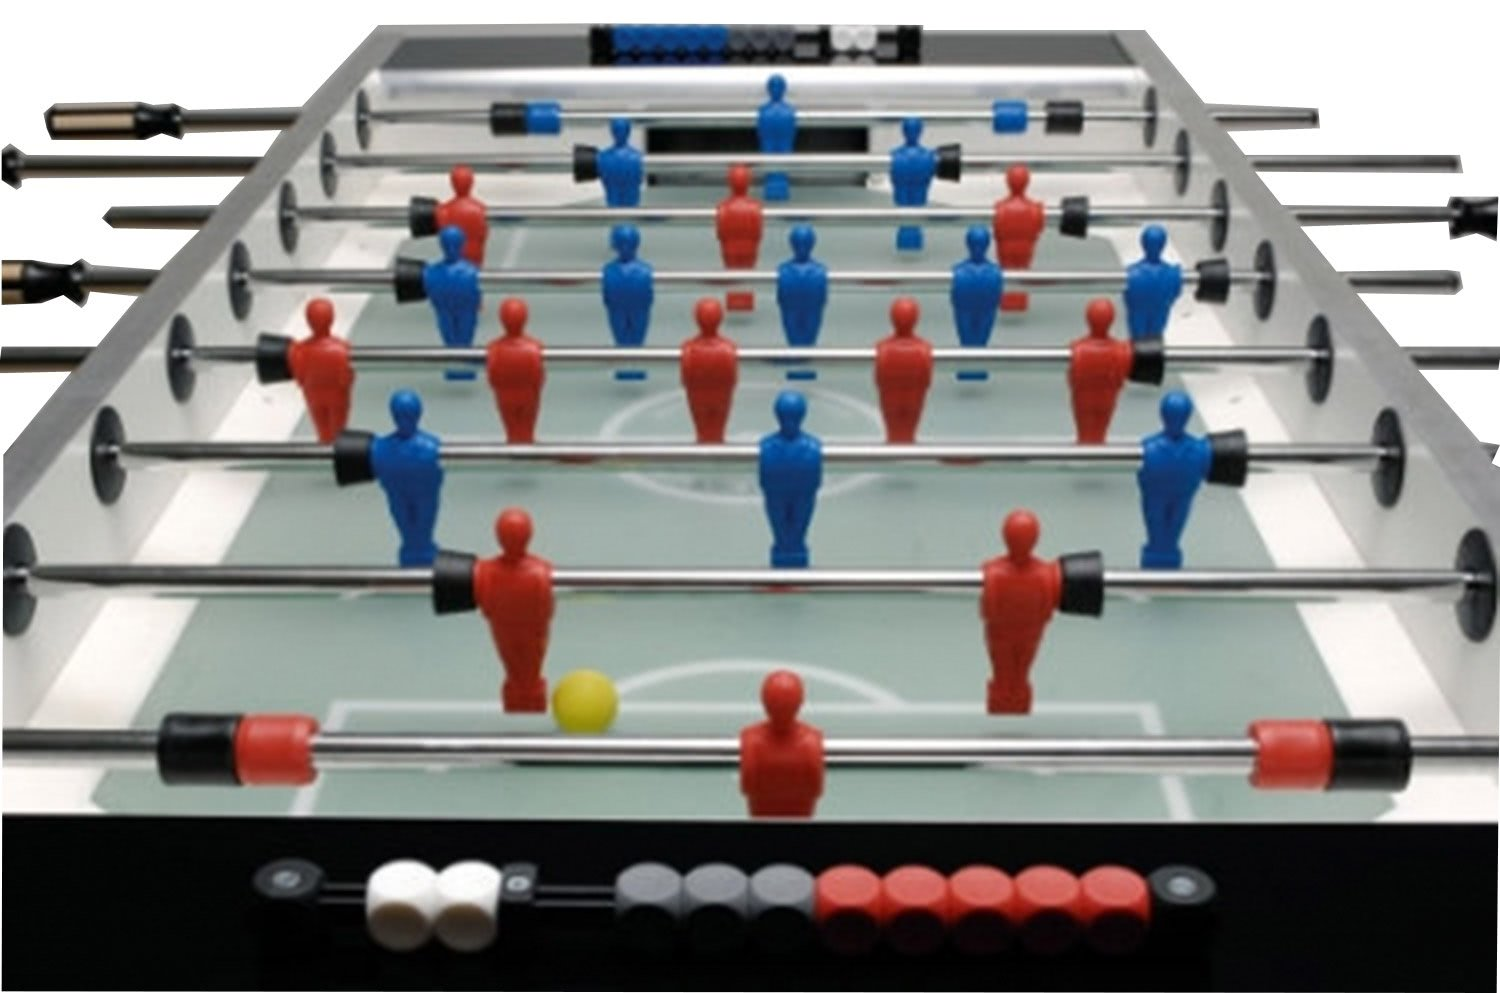 Used Coin Operated Pool Tables For Sale Garlando Master Champion Football Table | Liberty Games